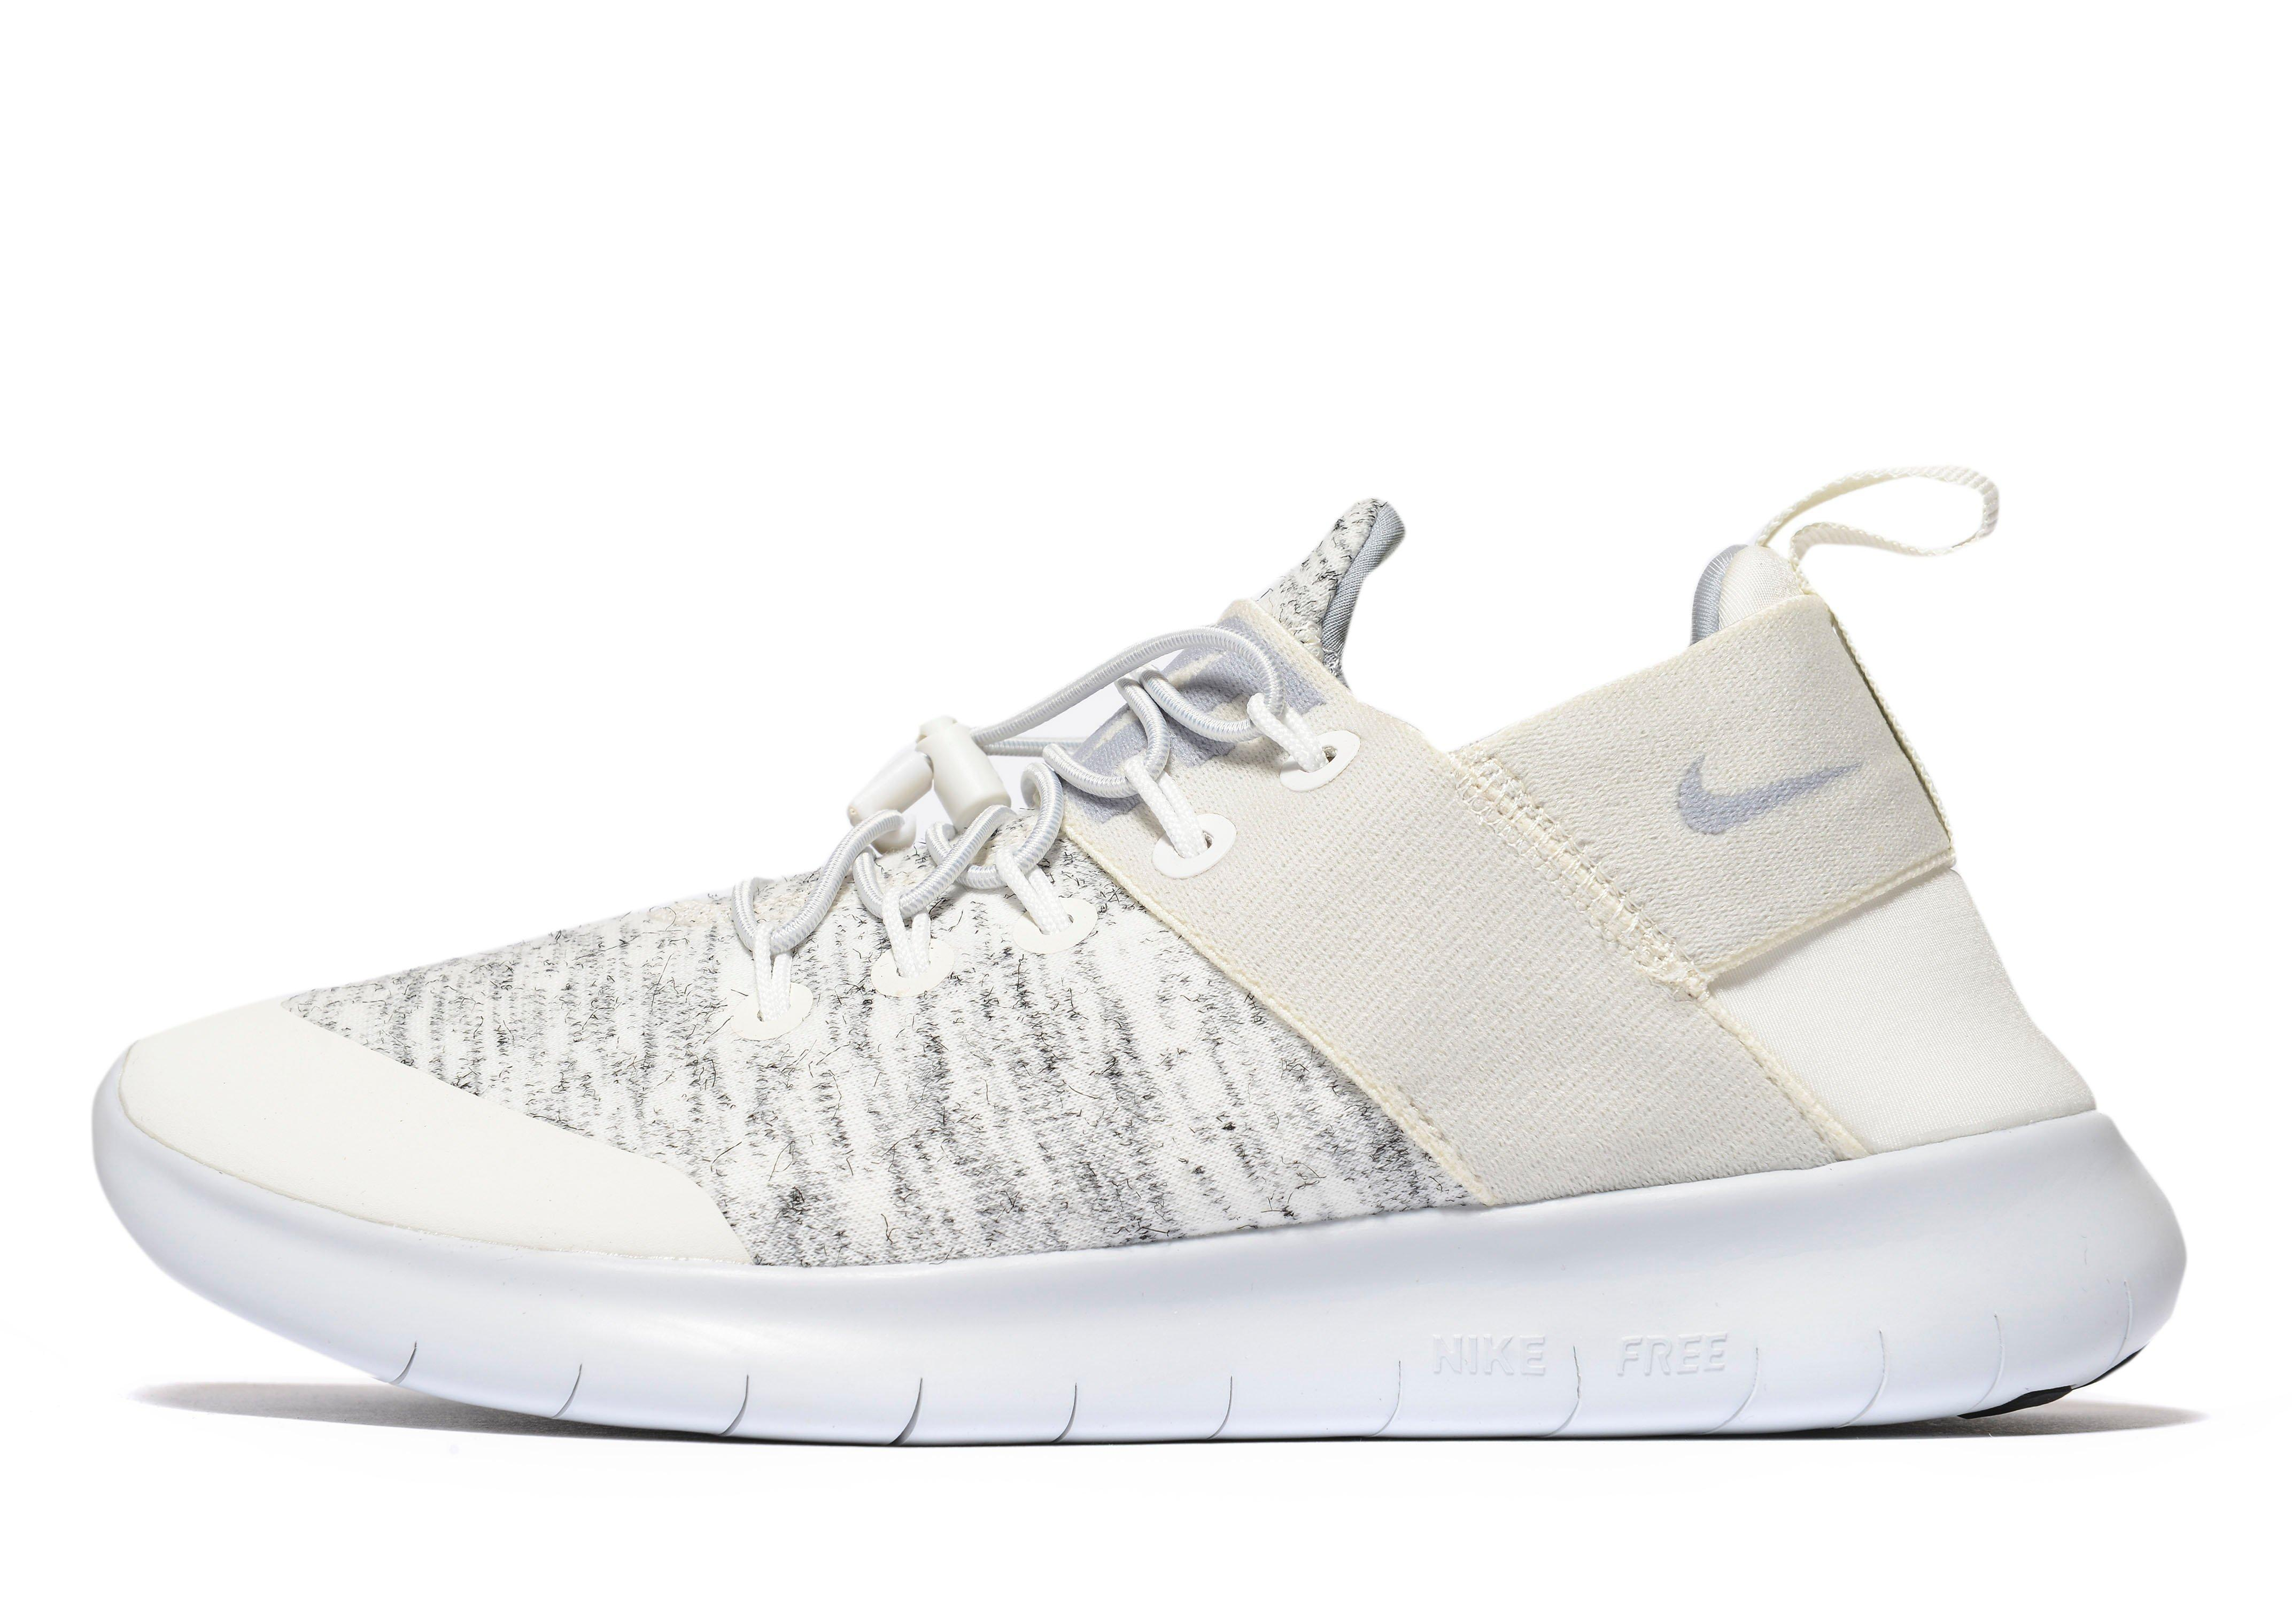 timeless design da847 07f17 ... norway gallery. previously sold at jd sports mens nike free 3a415 4f23e